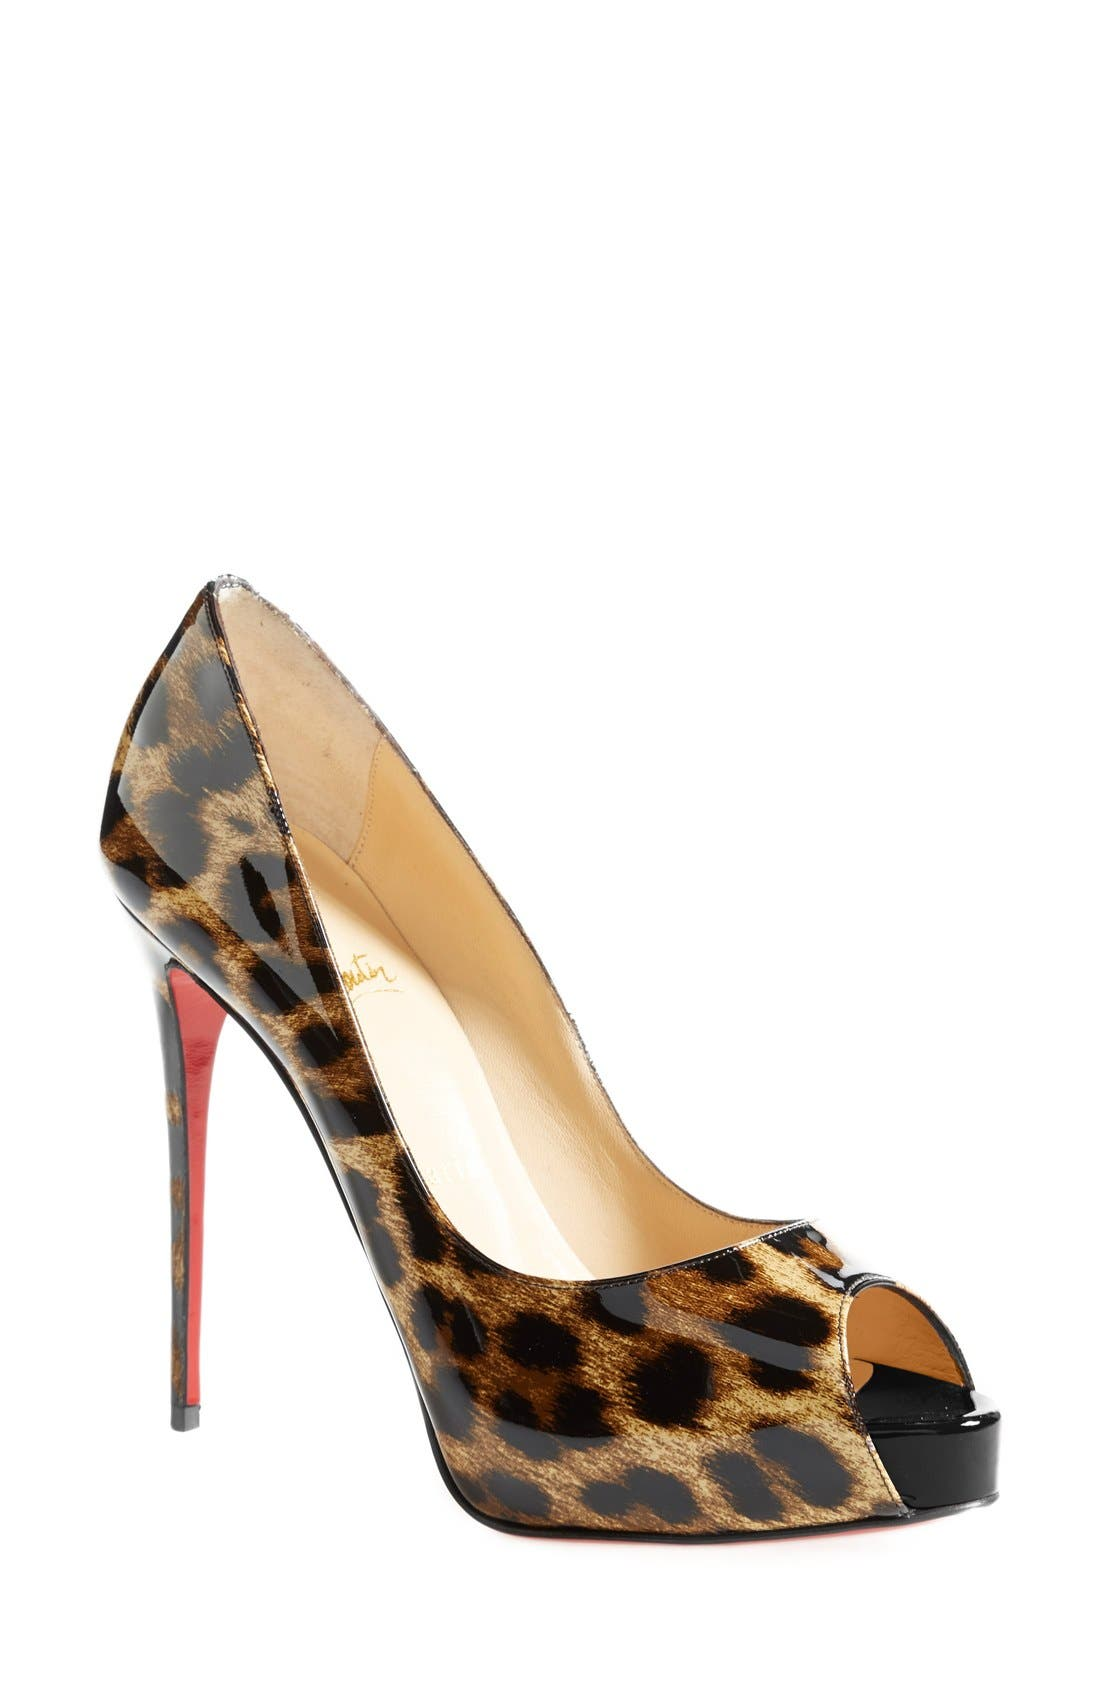 Main Image - Christian Louboutin 'New Very Prive' Pump